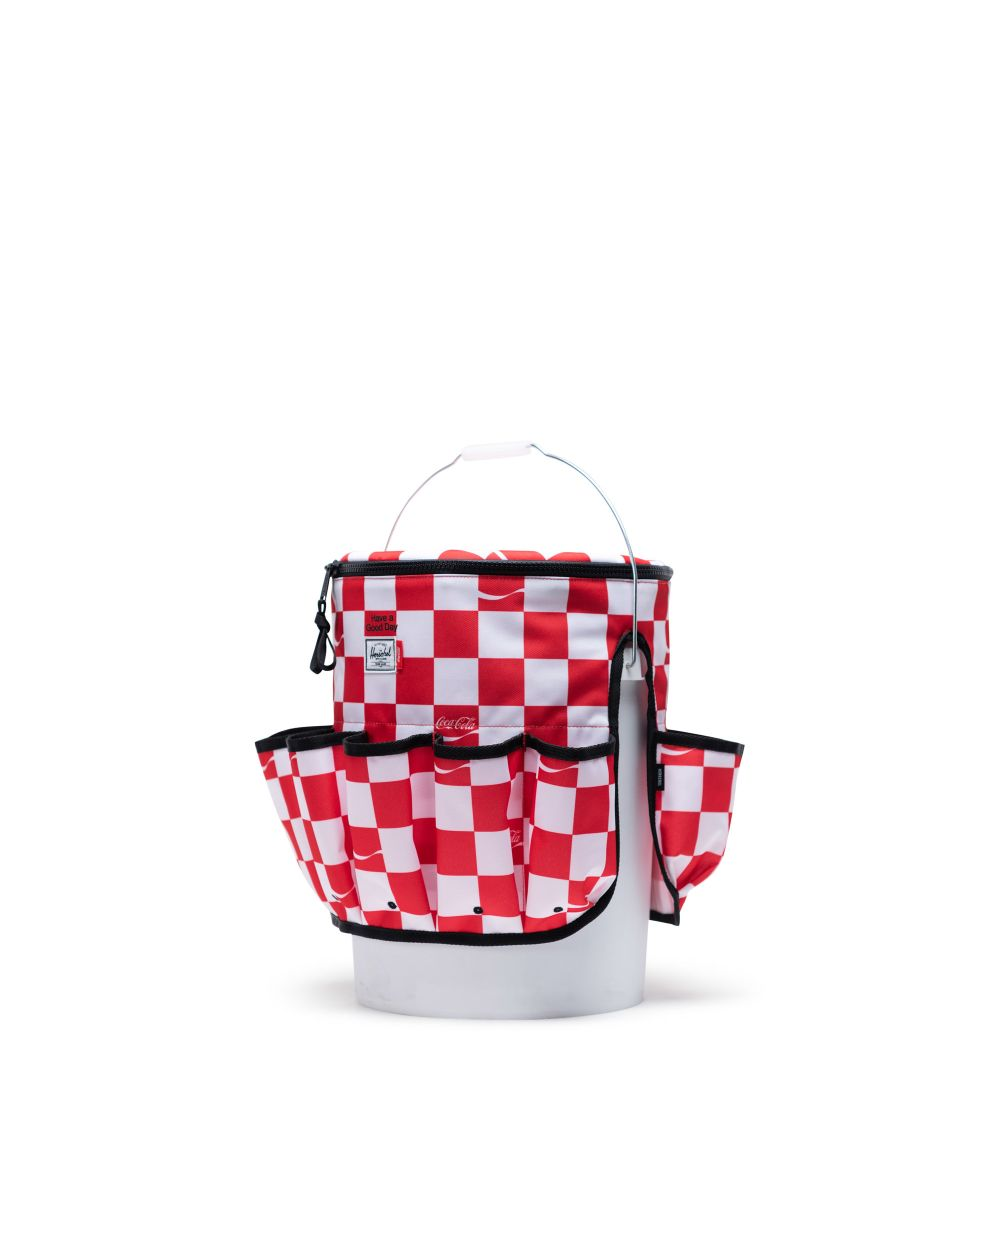 BUCKET BEACH BAG